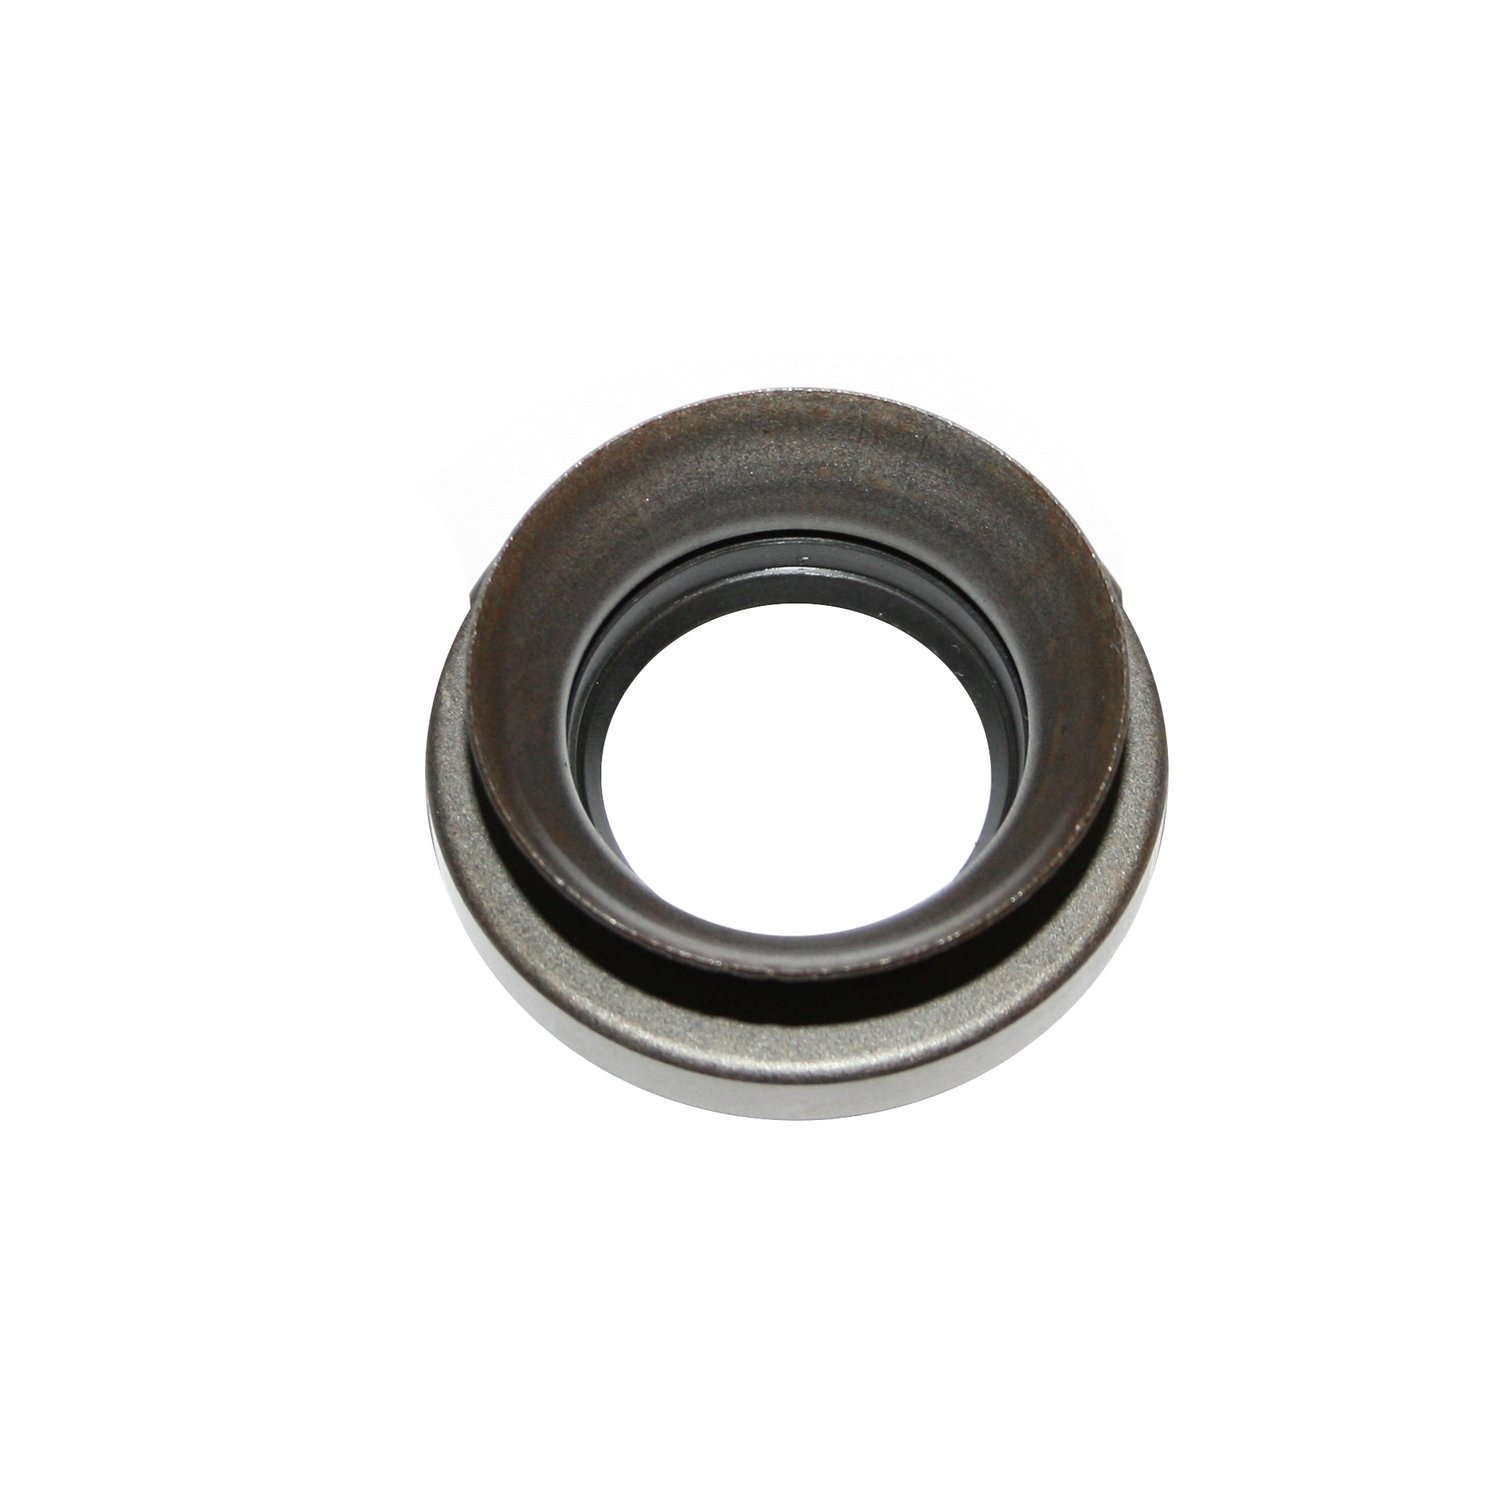 Omix-Ada 16526.02 Axle Oil Seal